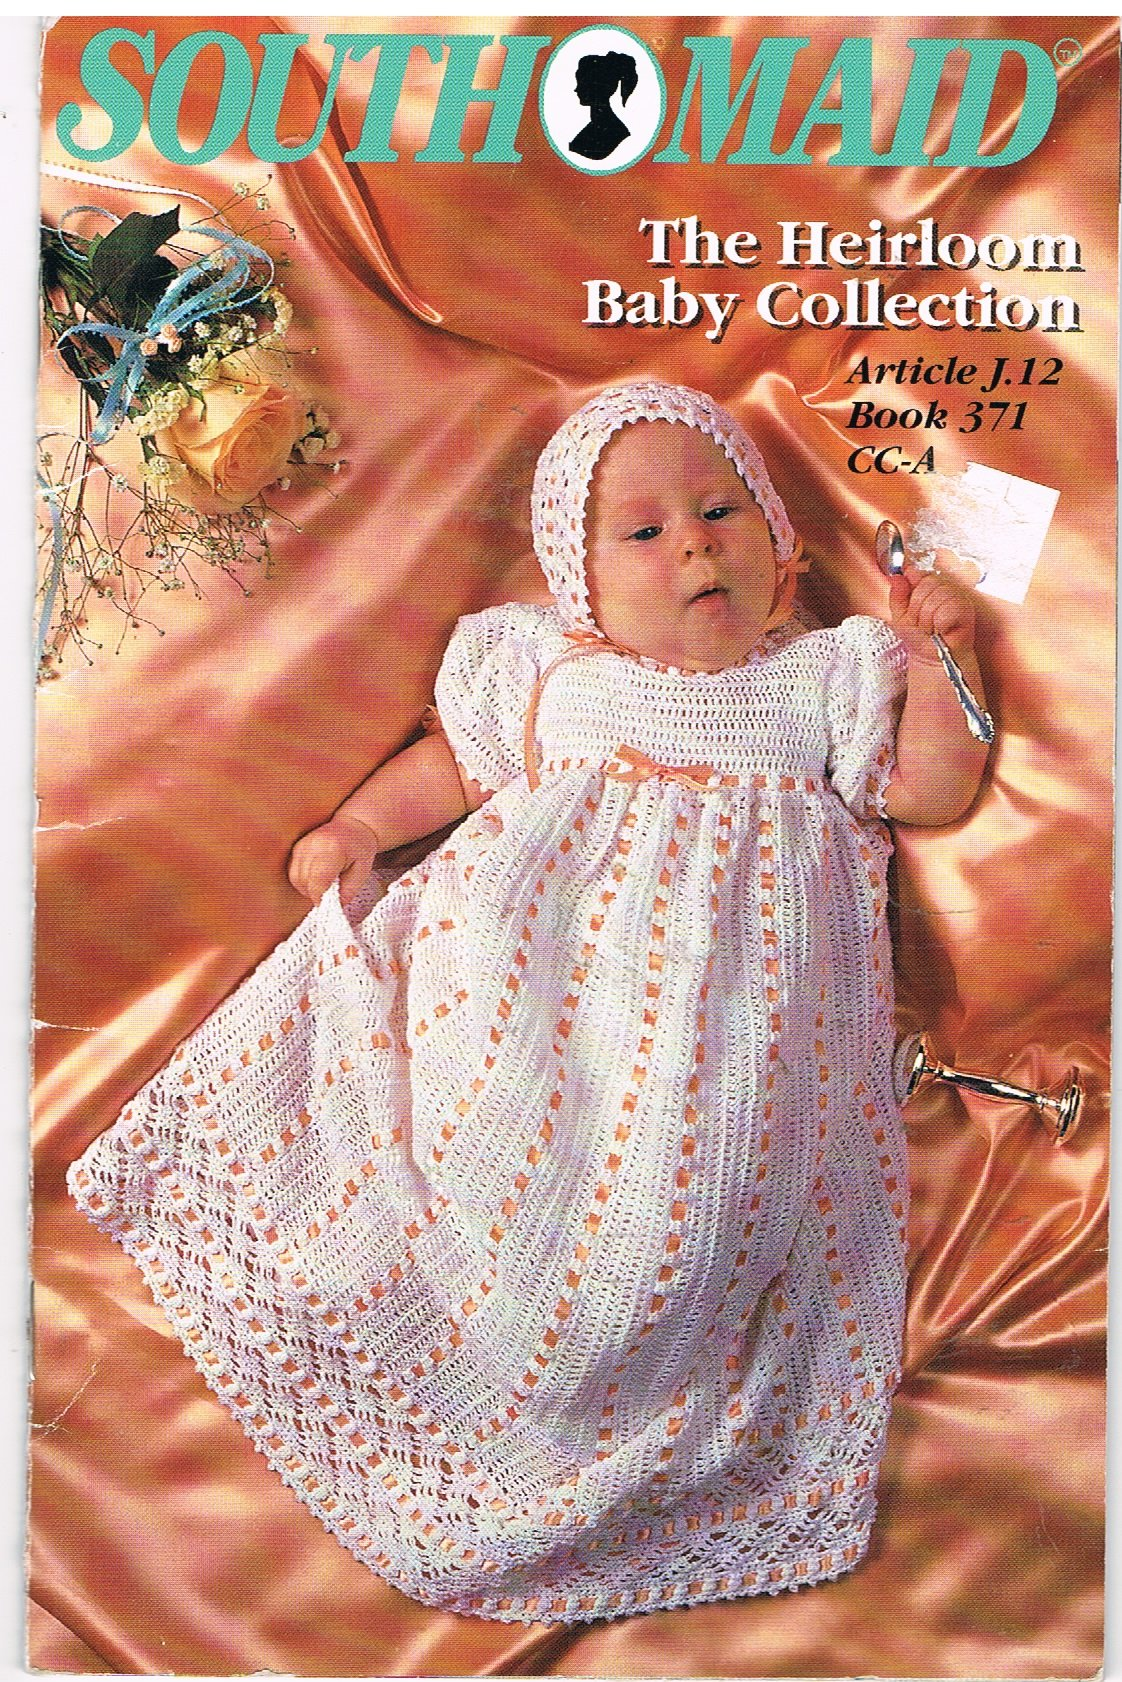 The Heirloom Baby Collection South Maid Book 371 Various